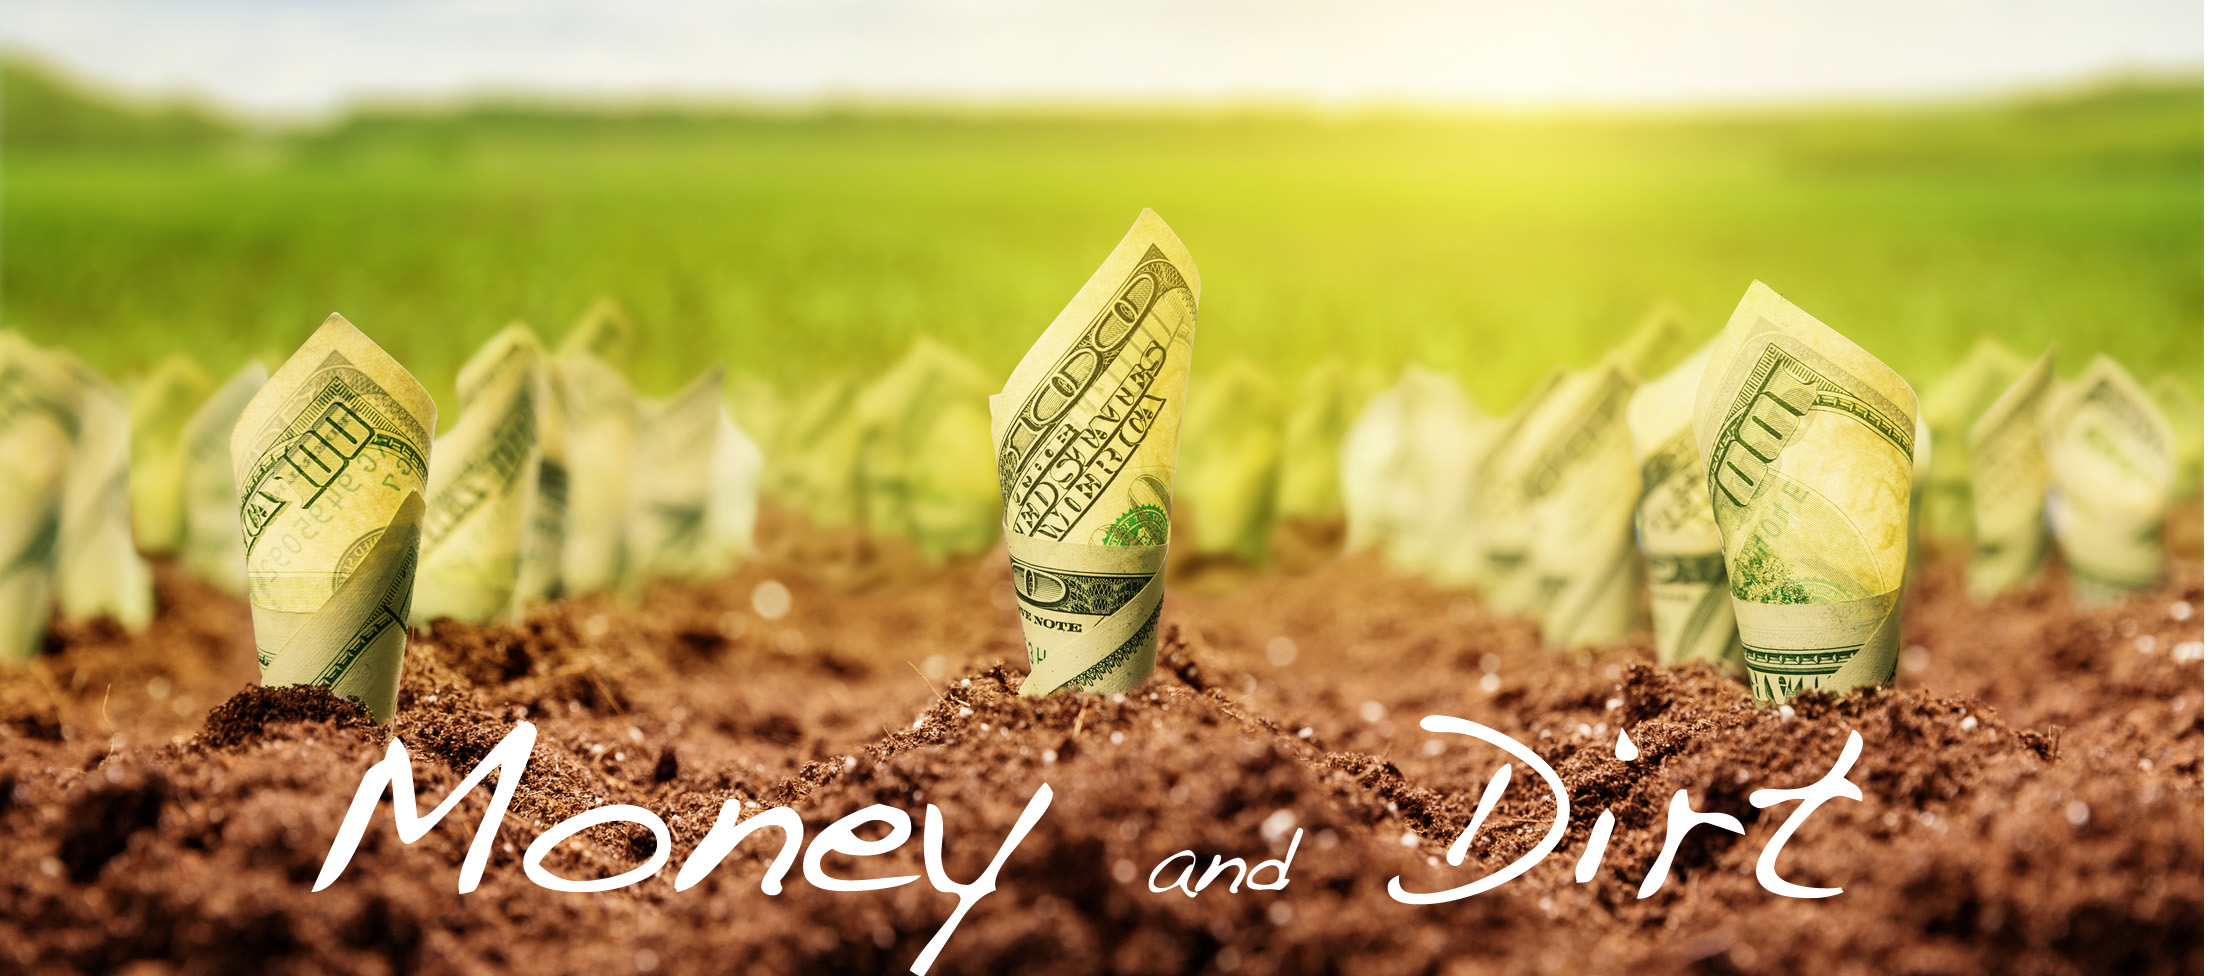 Money and Dirt